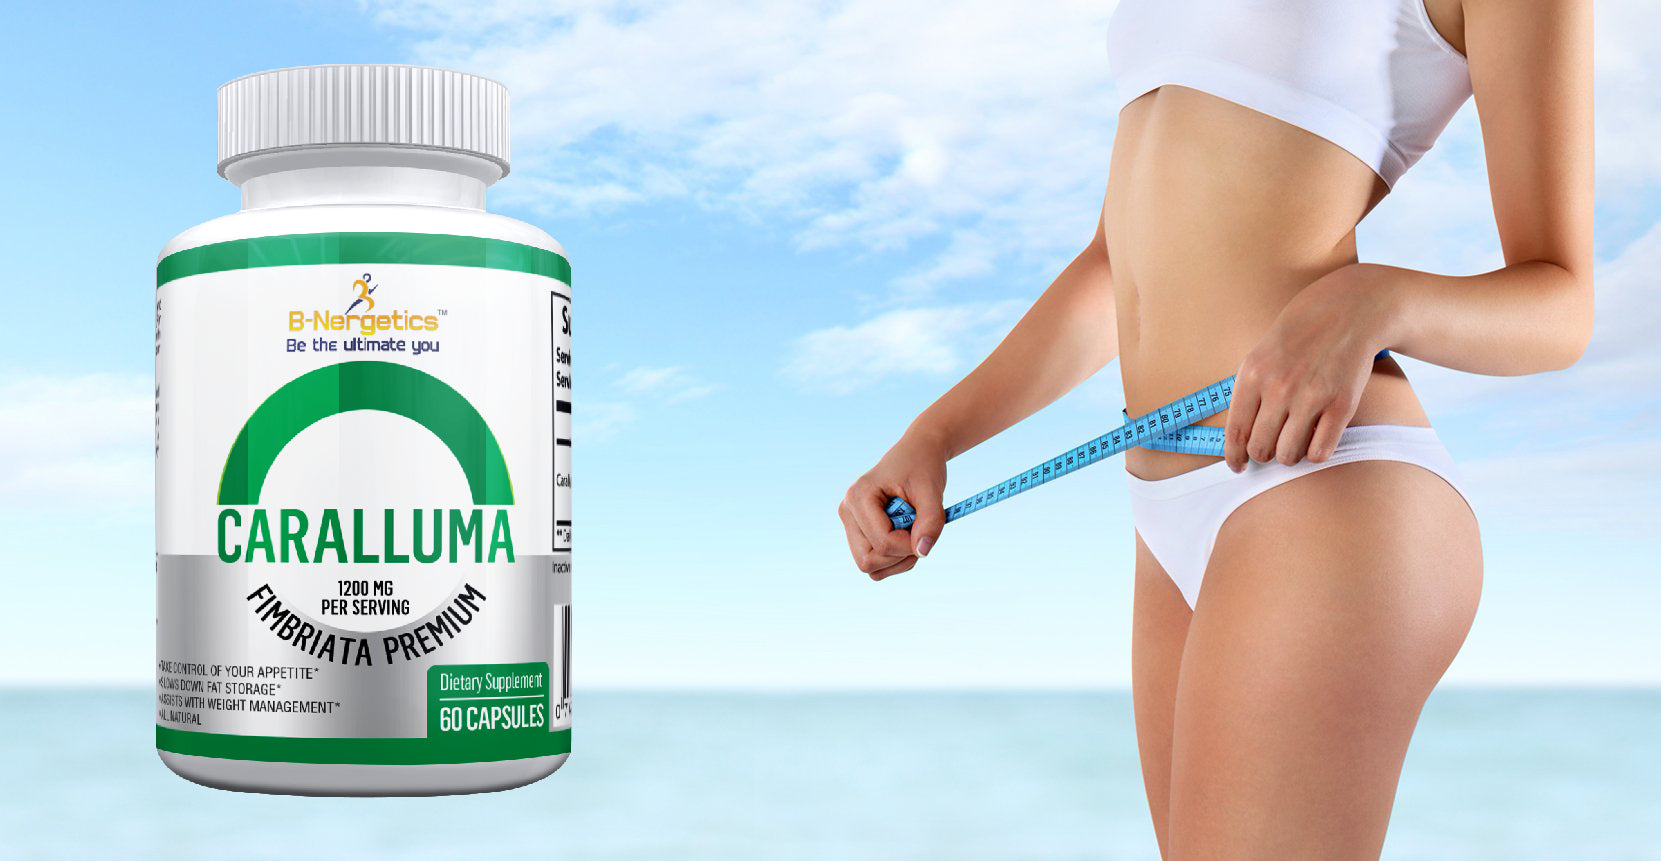 Caralluma Fimbriata - A New Natural Weight Loss Aid